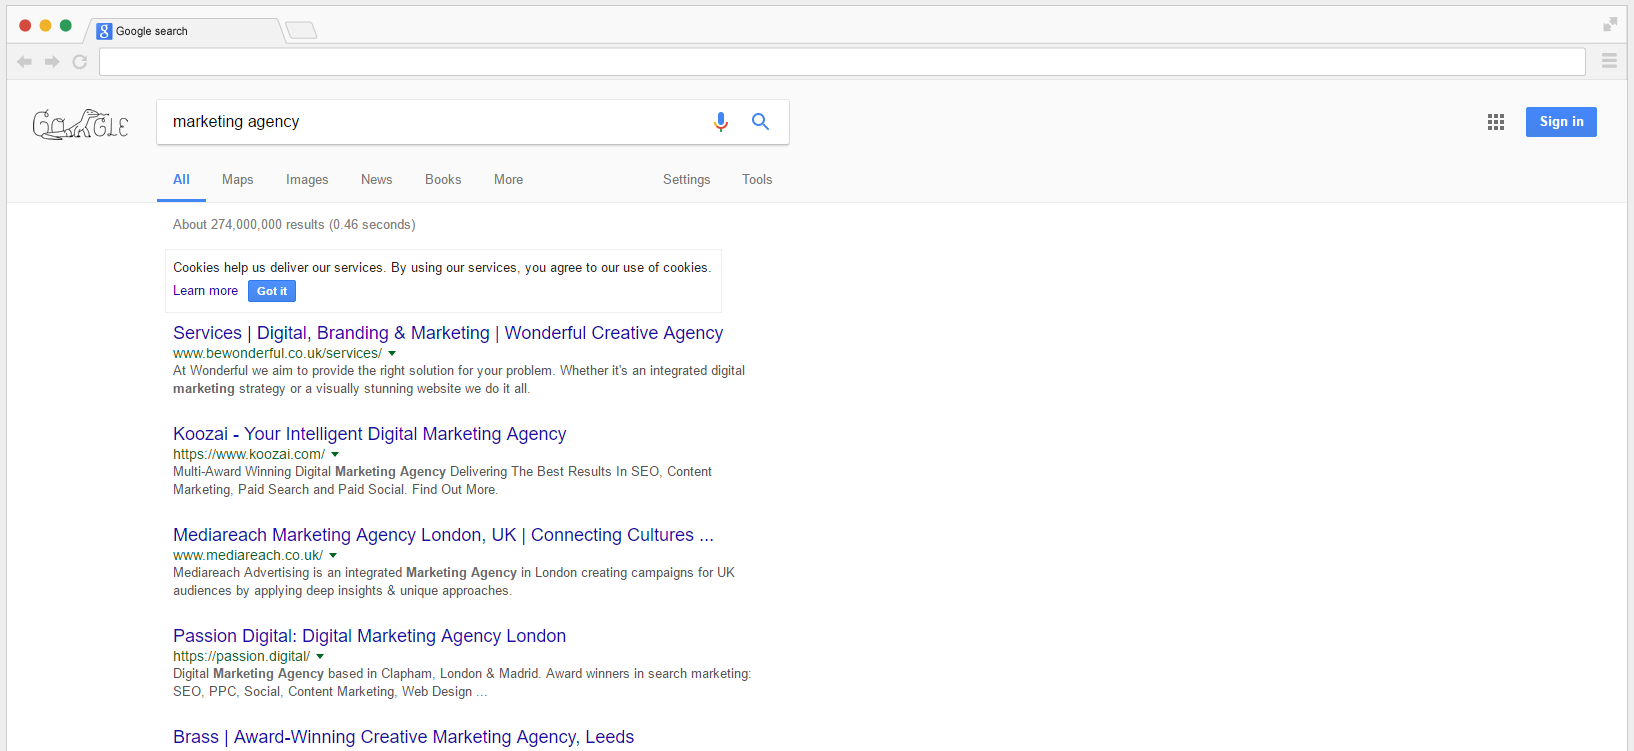 marketing-agency-general.png